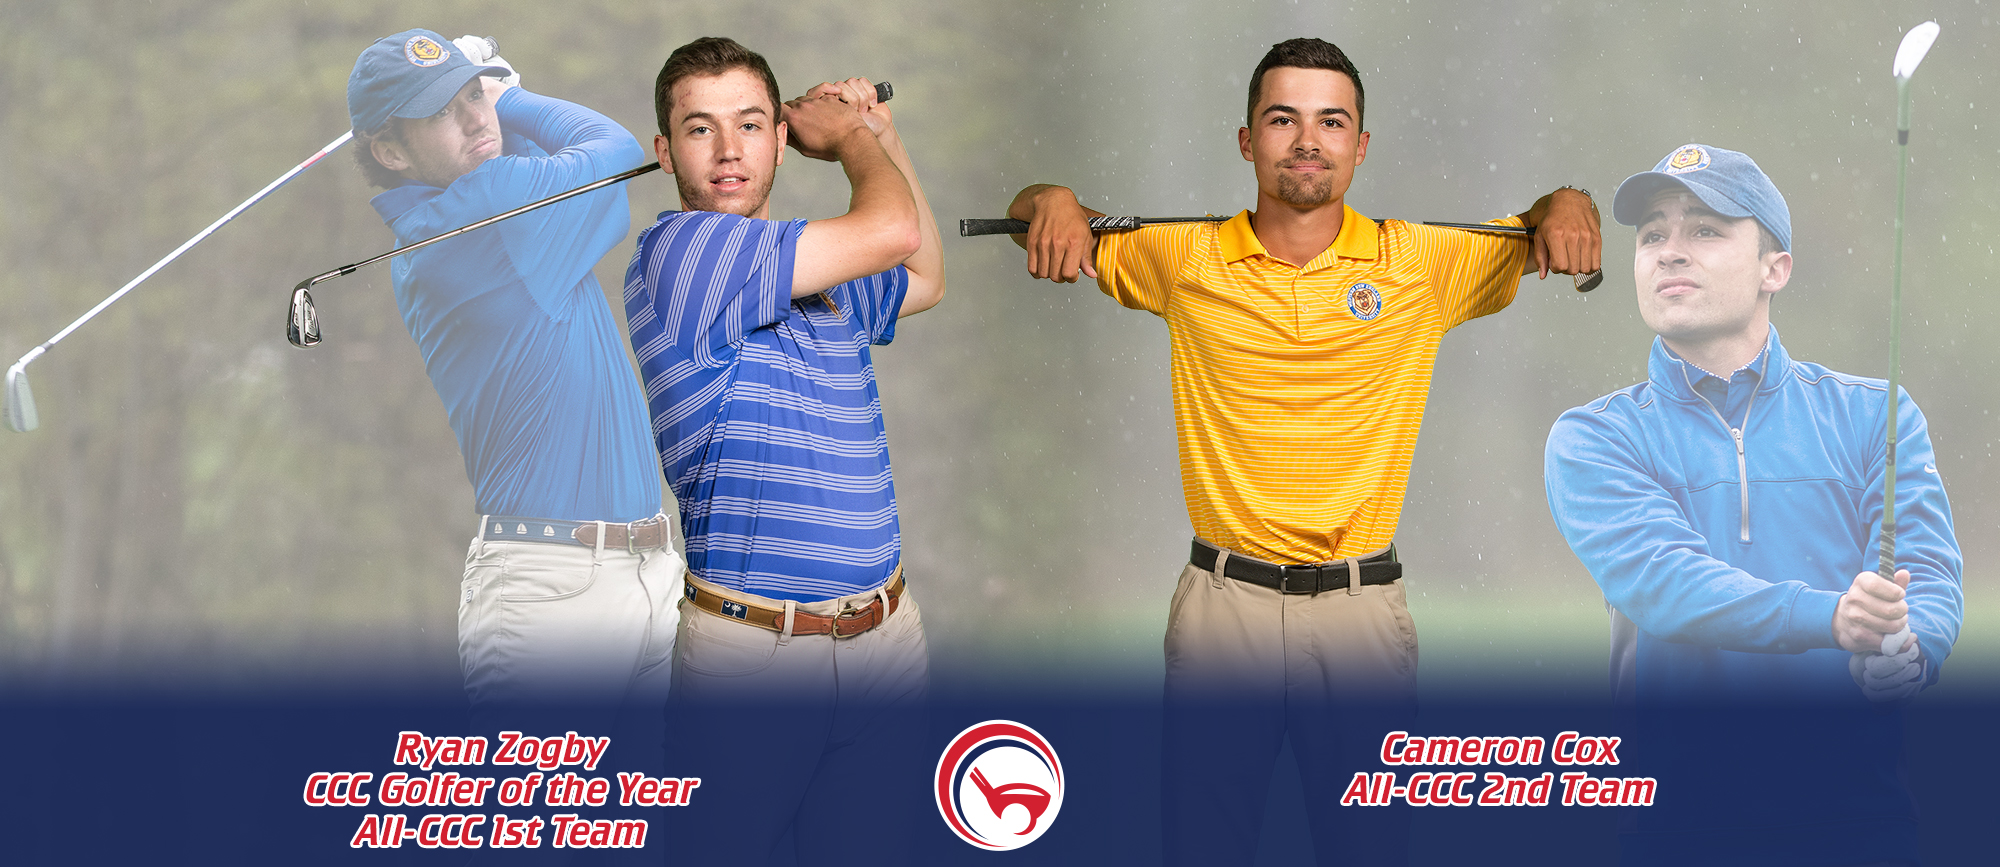 Zogby Named CCC Golfer of the Year, Cox Earns All-CCC 2nd Team Accolades